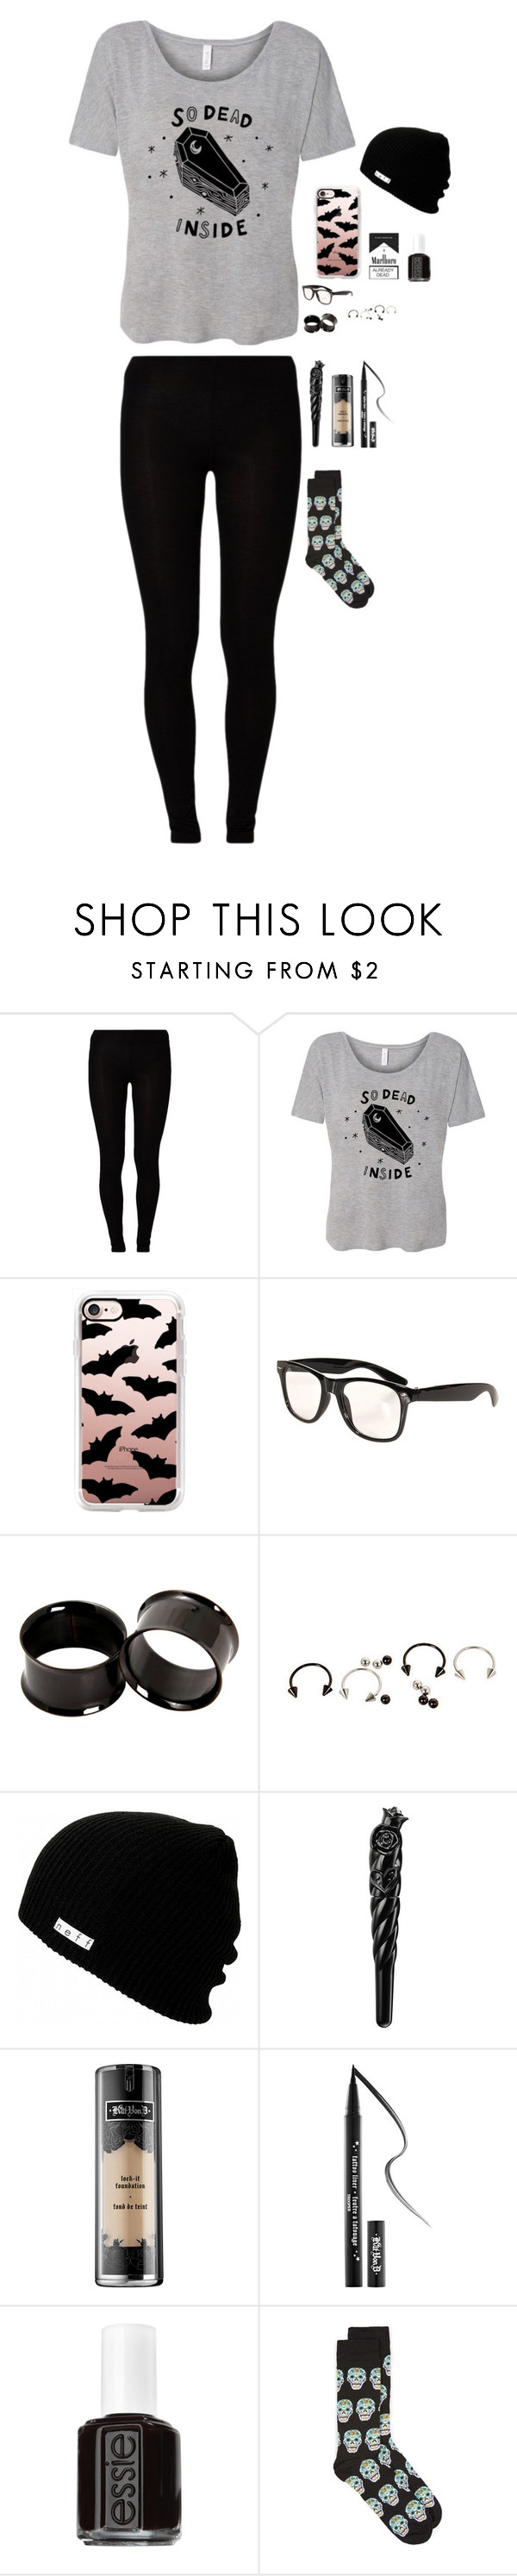 """Happy 31 Days Of October!"" by tellthewolvesimhome ❤ liked on Polyvore featuring Majestic, Casetify, Neff, Anna Sui, Kat Von D, Essie and Topman"